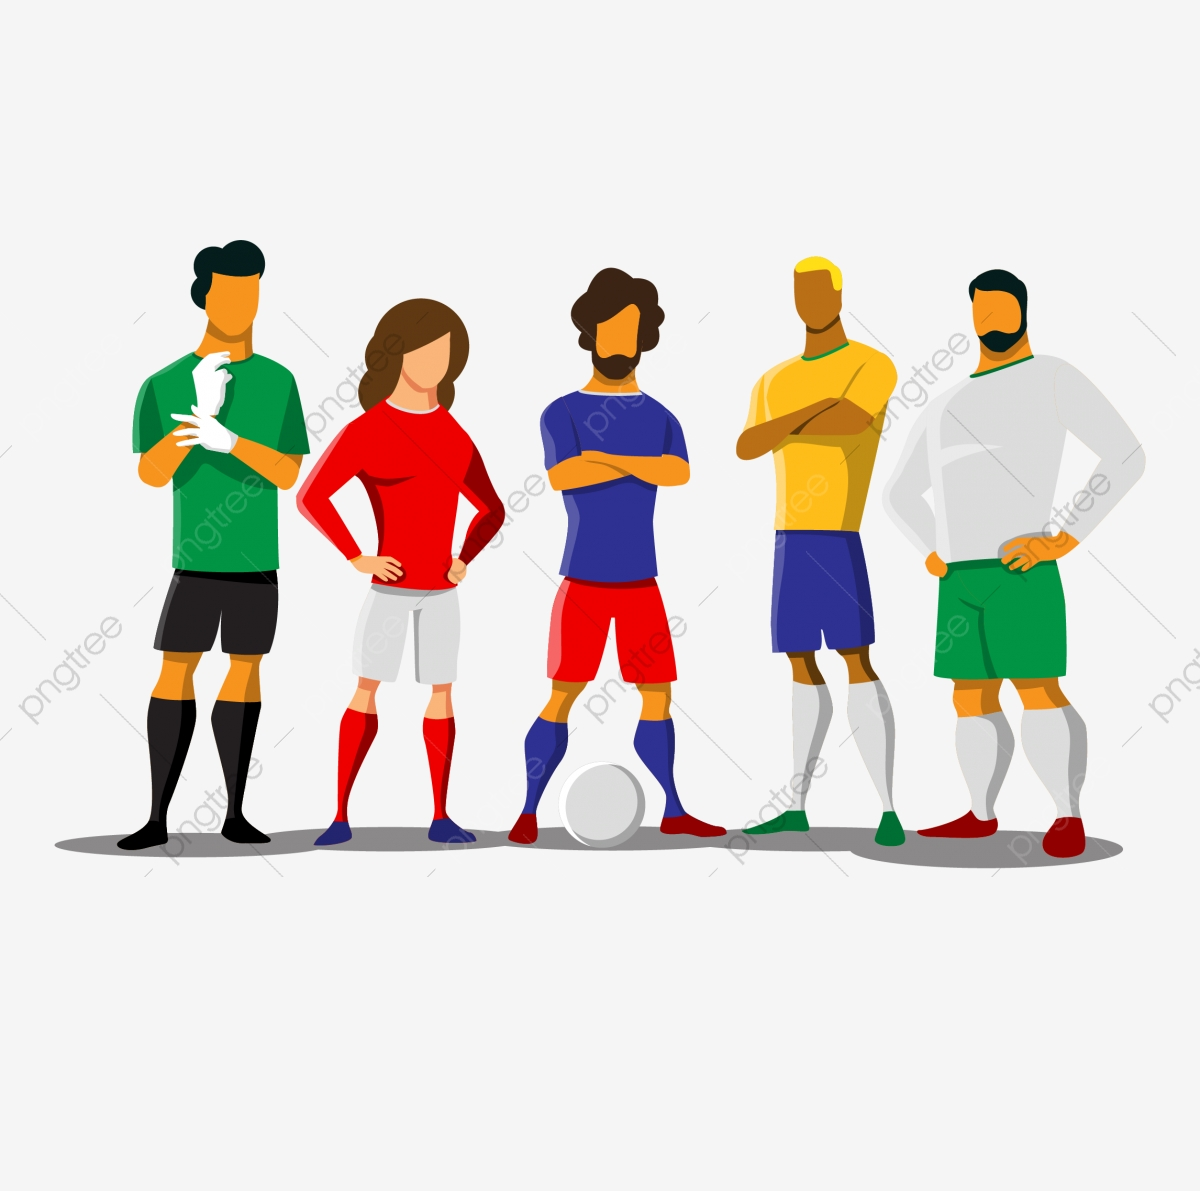 Football Football Team Team Physical Education Sports Team Cartoon Football Football Player Png And Vector With Transparent Background For Free Download